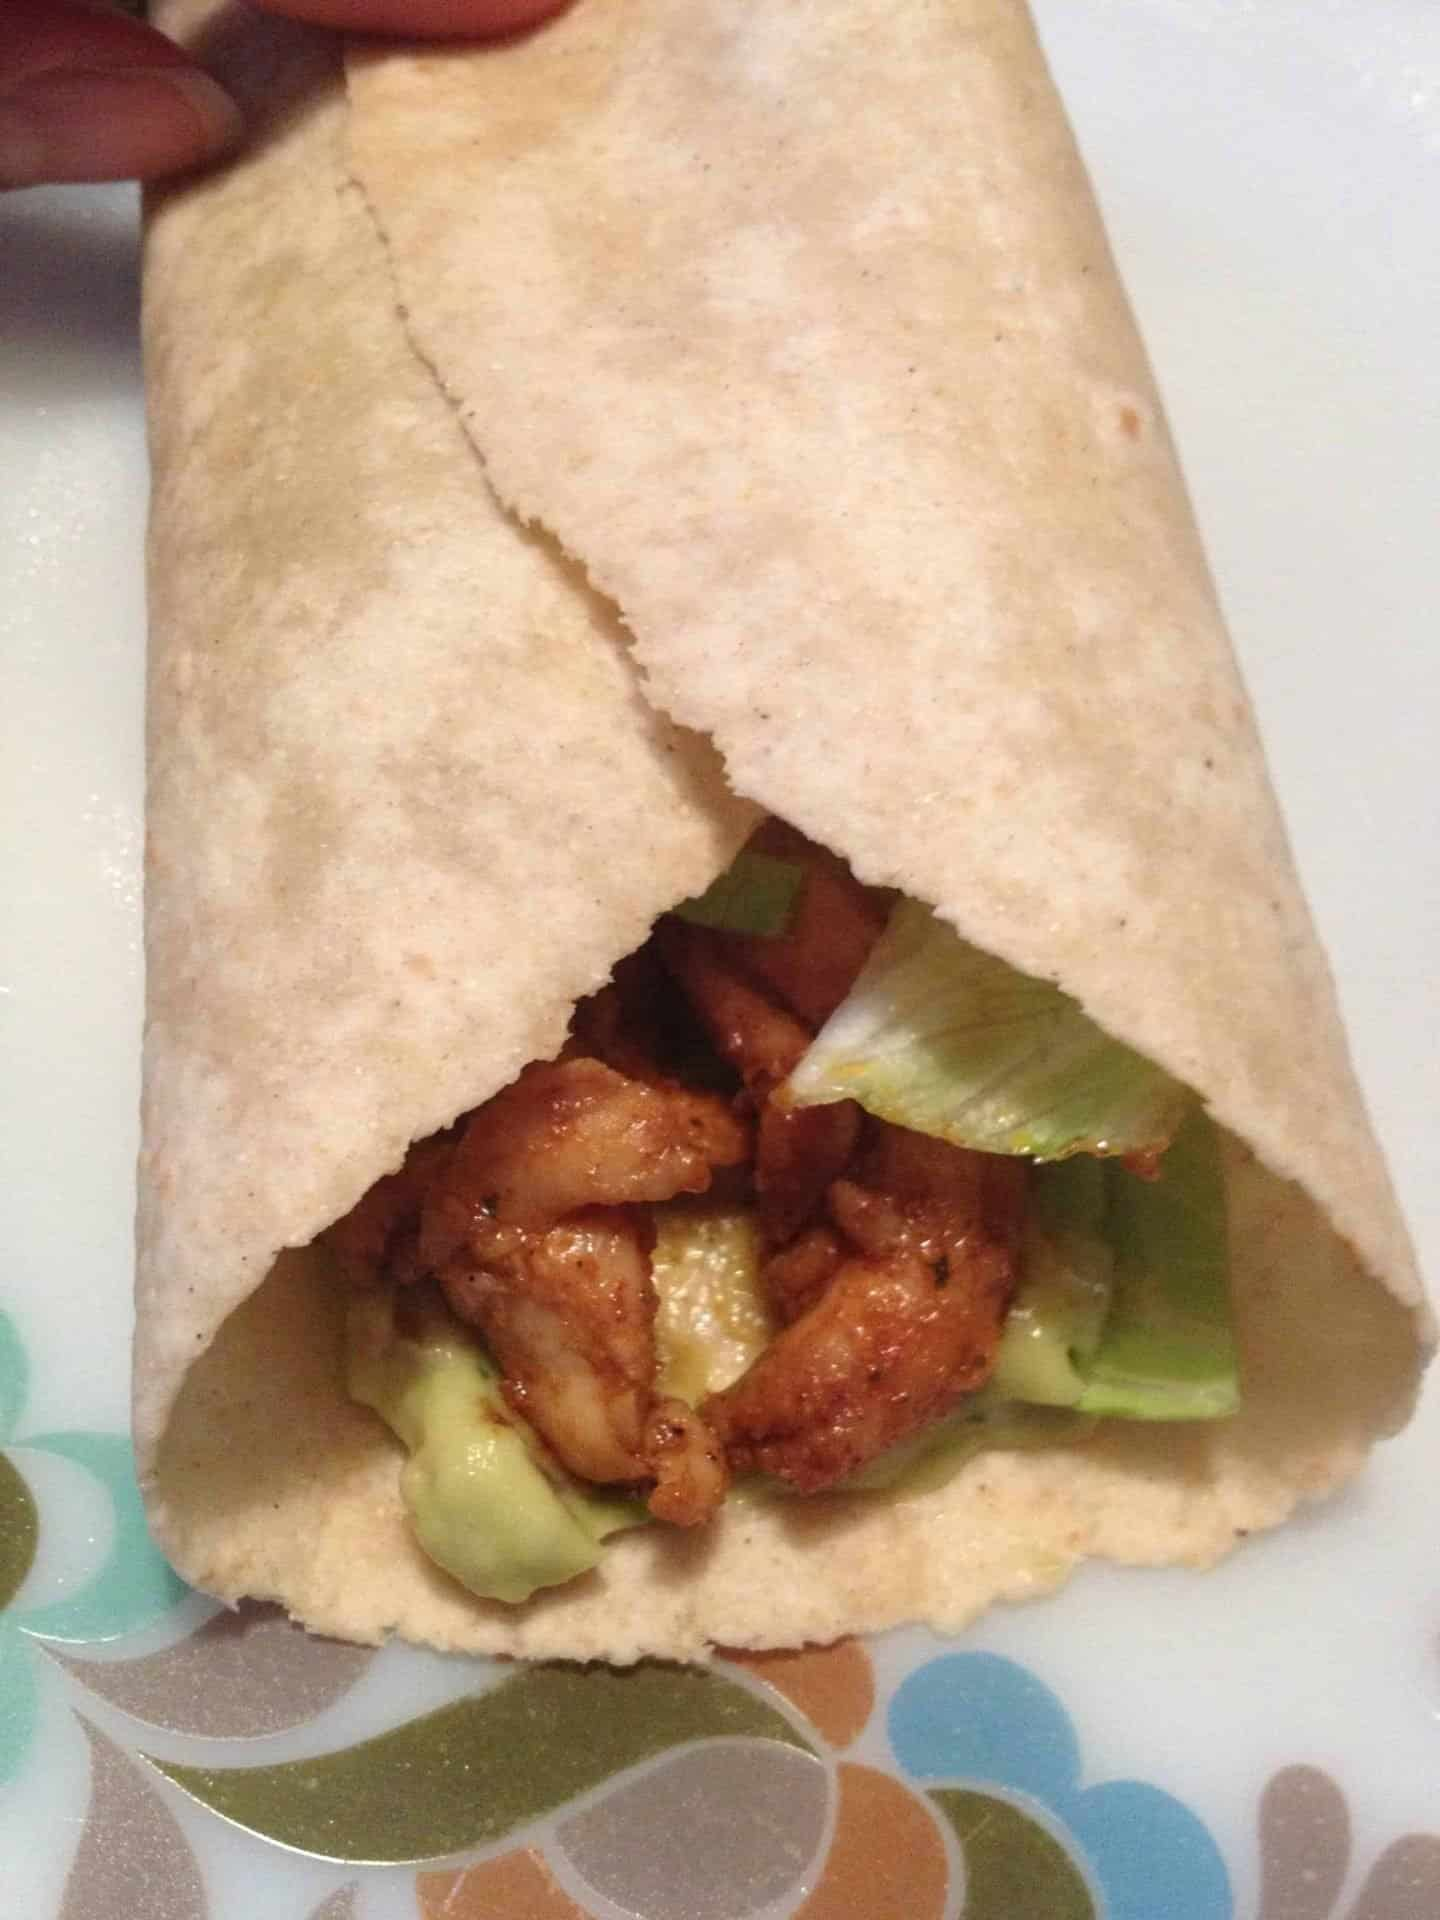 Gluten and wheat free wraps from BFree